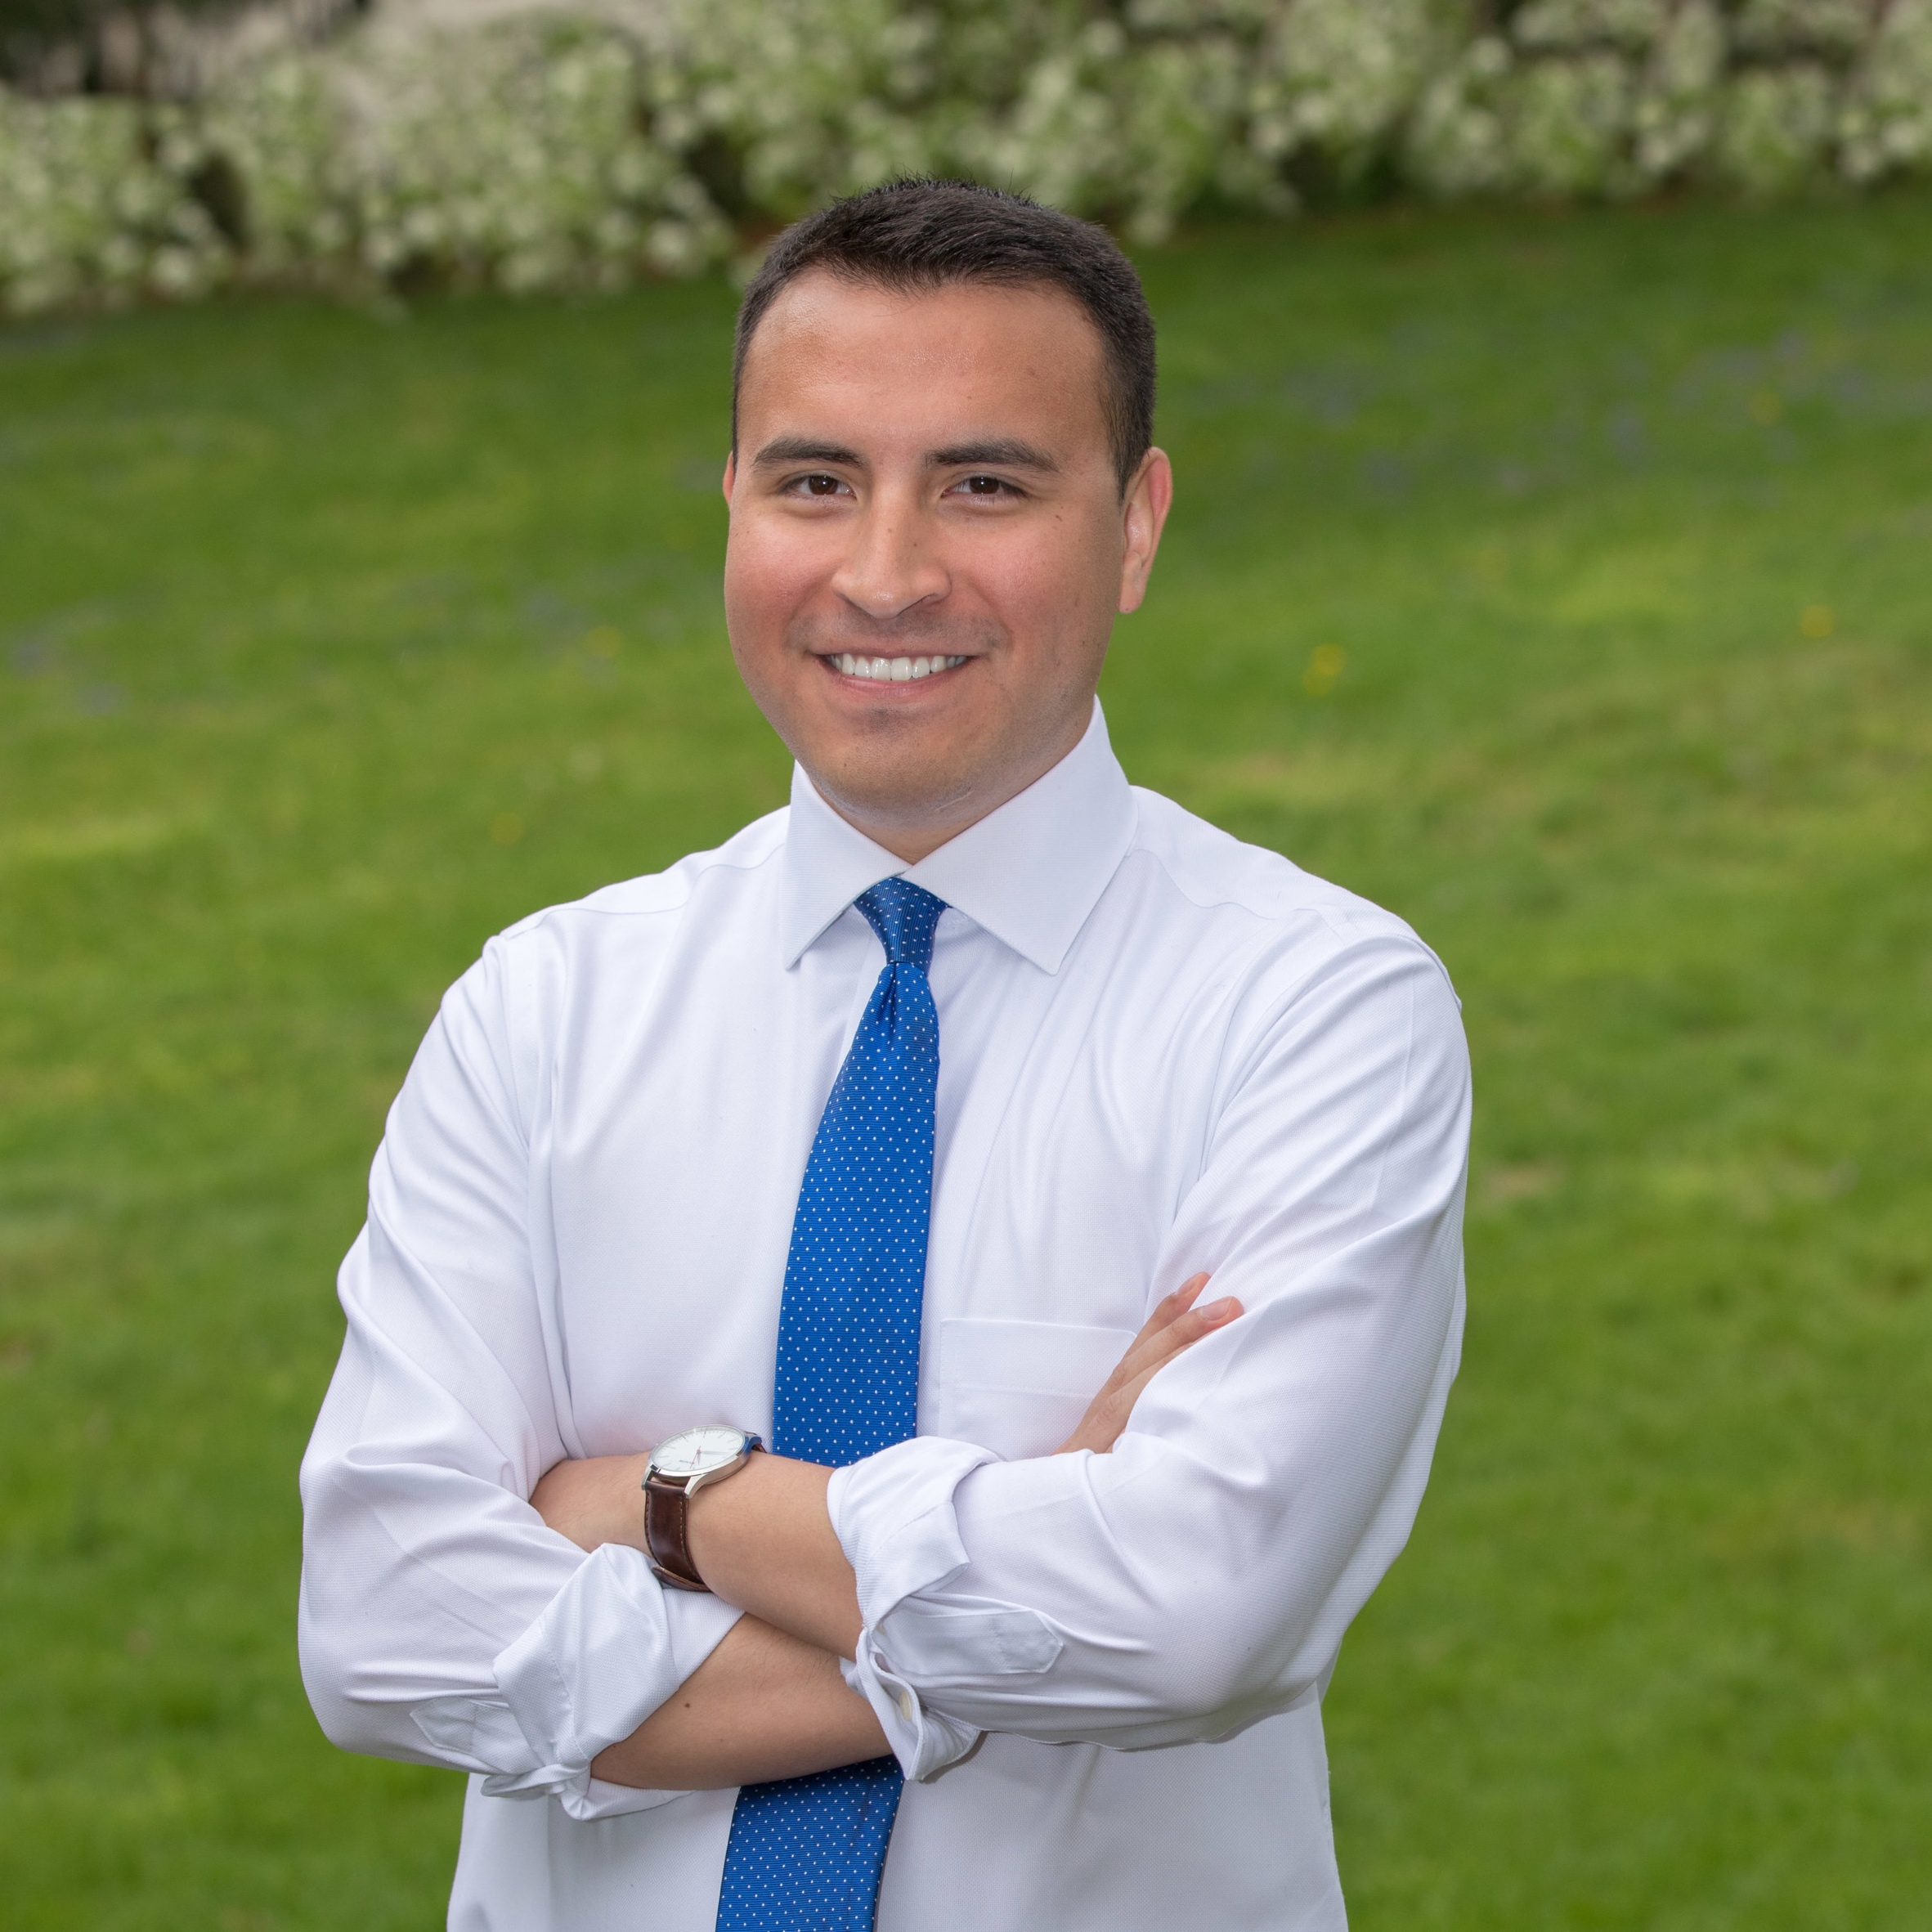 Please vote for Iber Guerrero Lopez for Lancaster Township Supervisor!